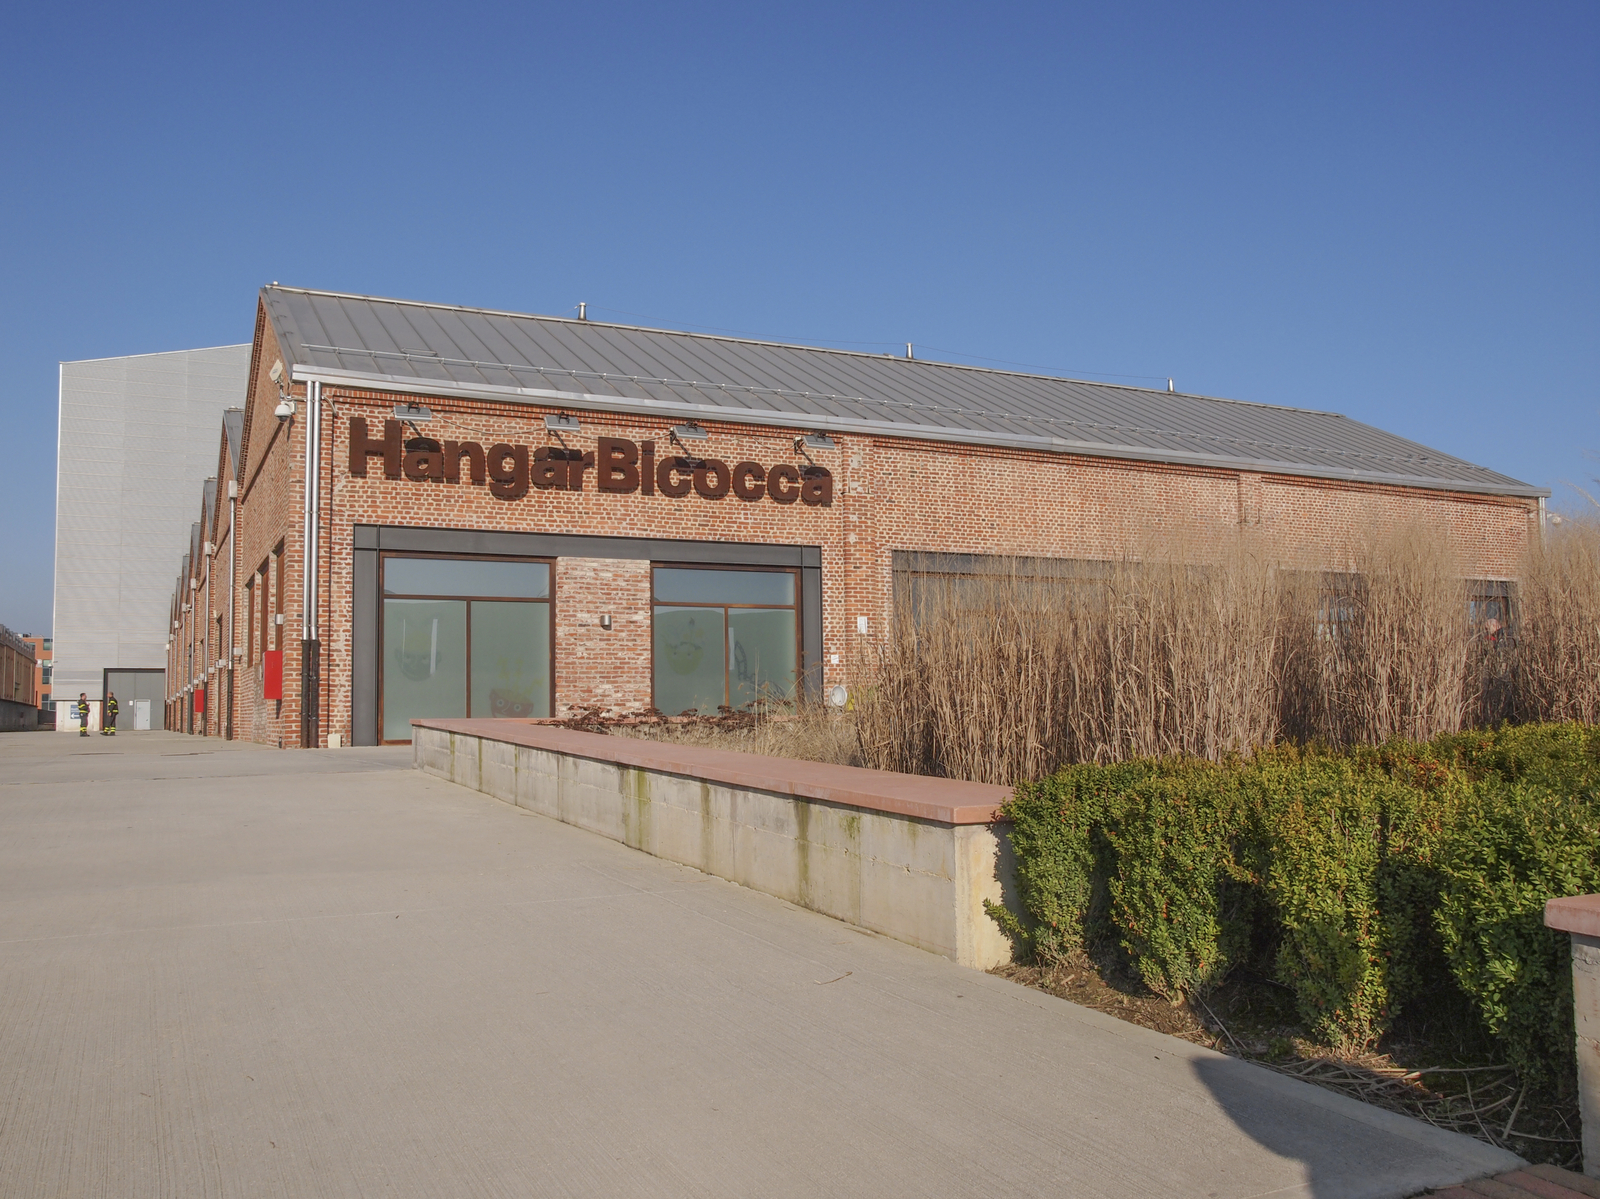 Milan, Italy - February 23, 2014: The Hangar Bicocca is a new exhibition room for contemporary art built in 2004 into an abandoned factory in a large regeneration area